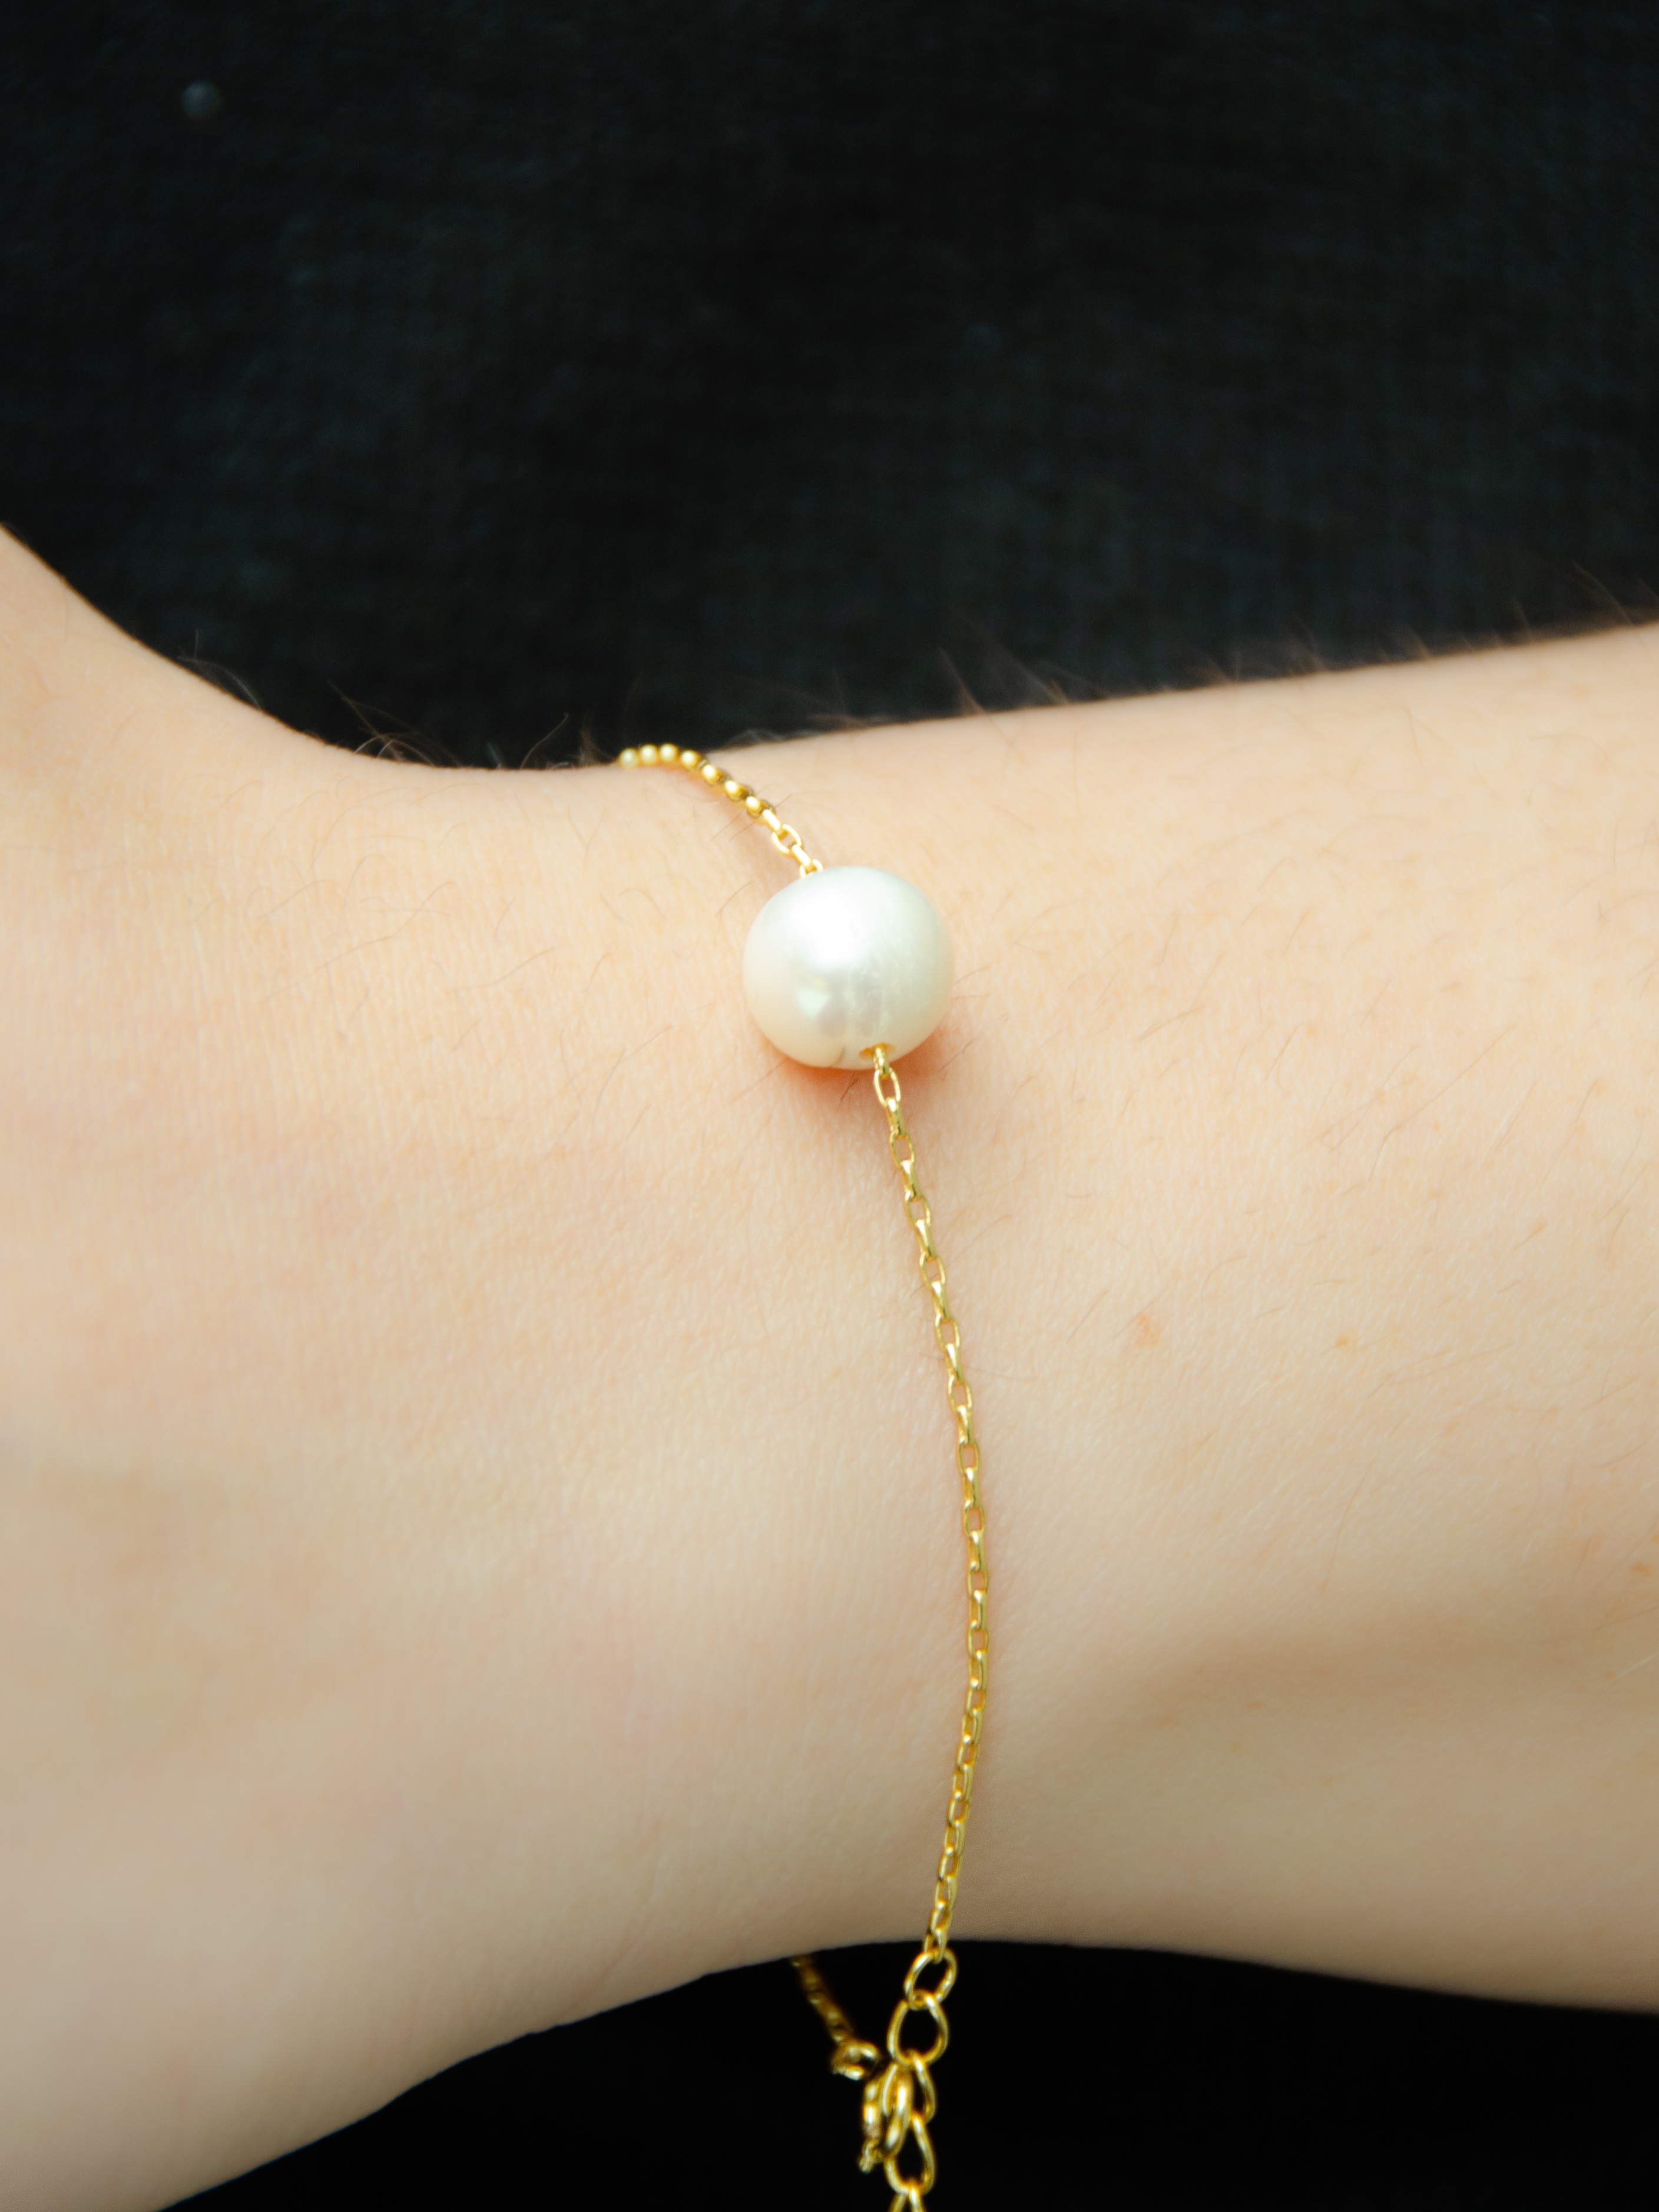 24K Gold Bracelet with Freshwater Pearl